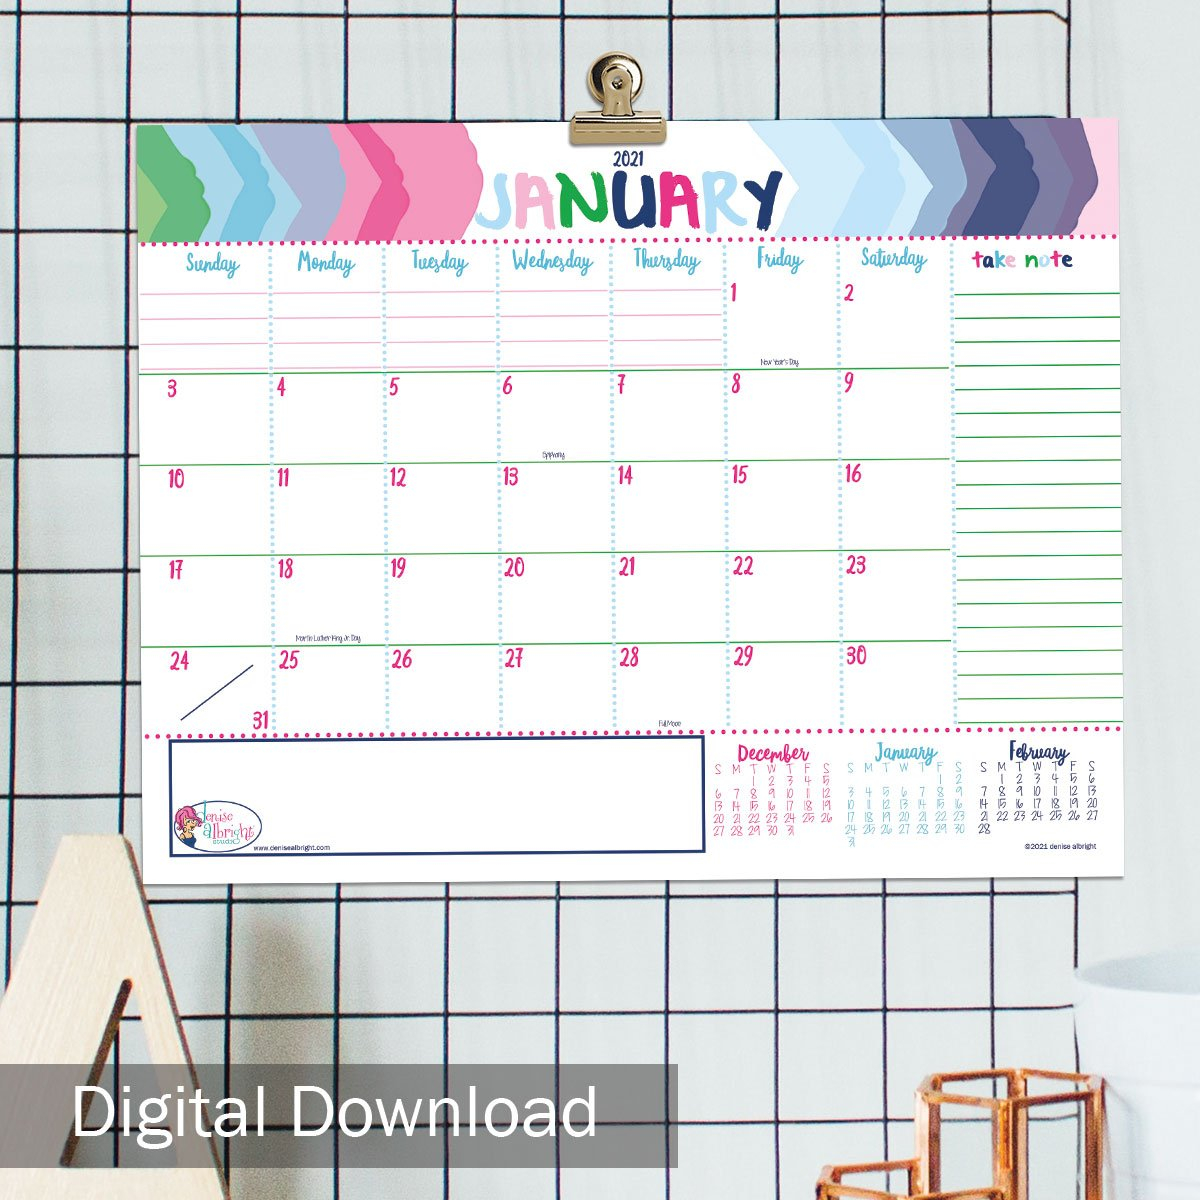 free digital january 2021 monthly view calendar print ready delivered instantly